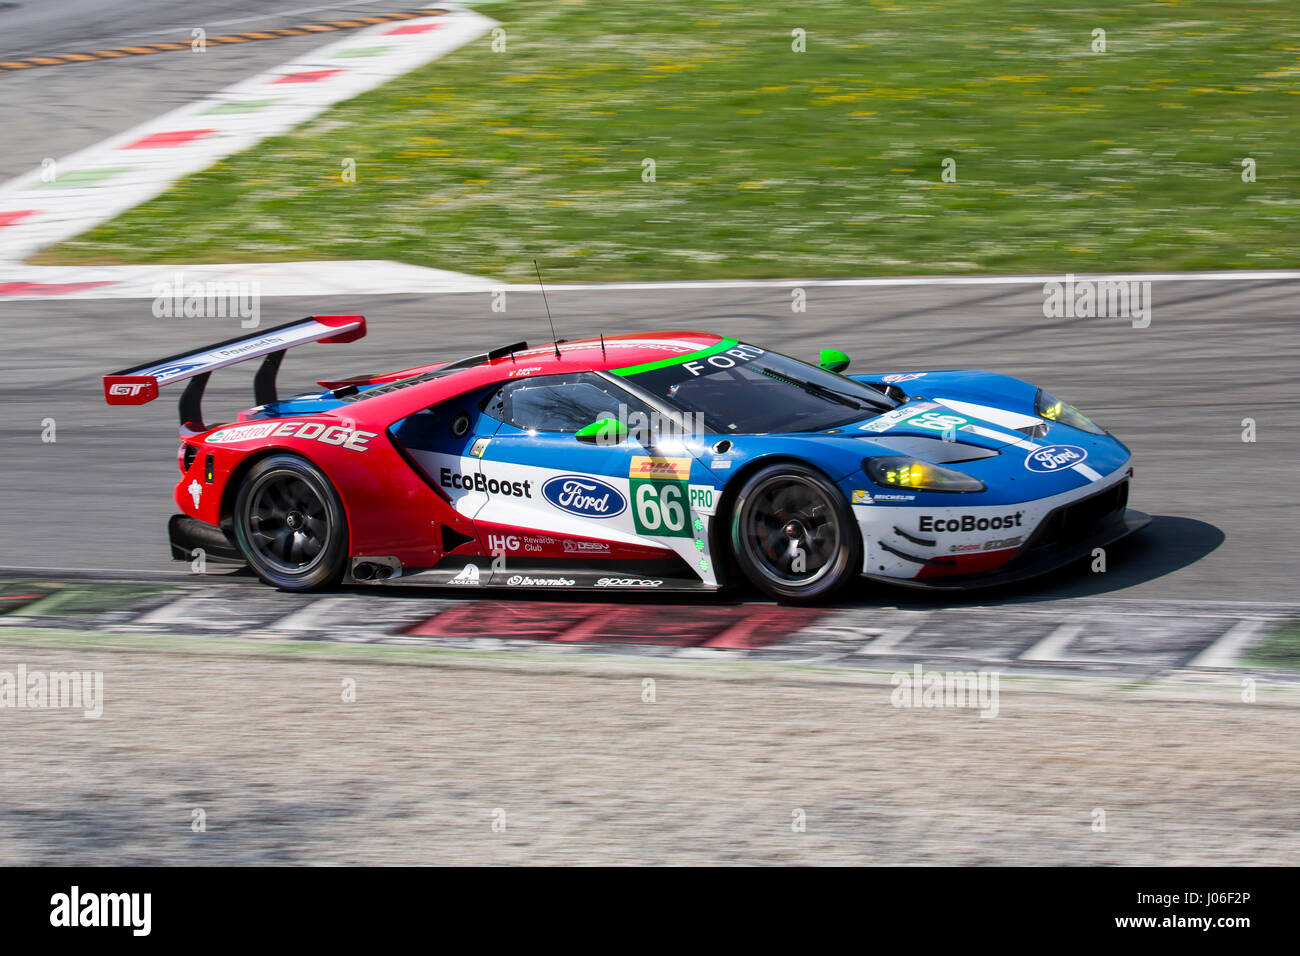 Monza Italy April   Ford Gt Of Ford Chip Ganassi Team Driven By S Mucke And O Pla During The Fia World Endurance Championship Official T